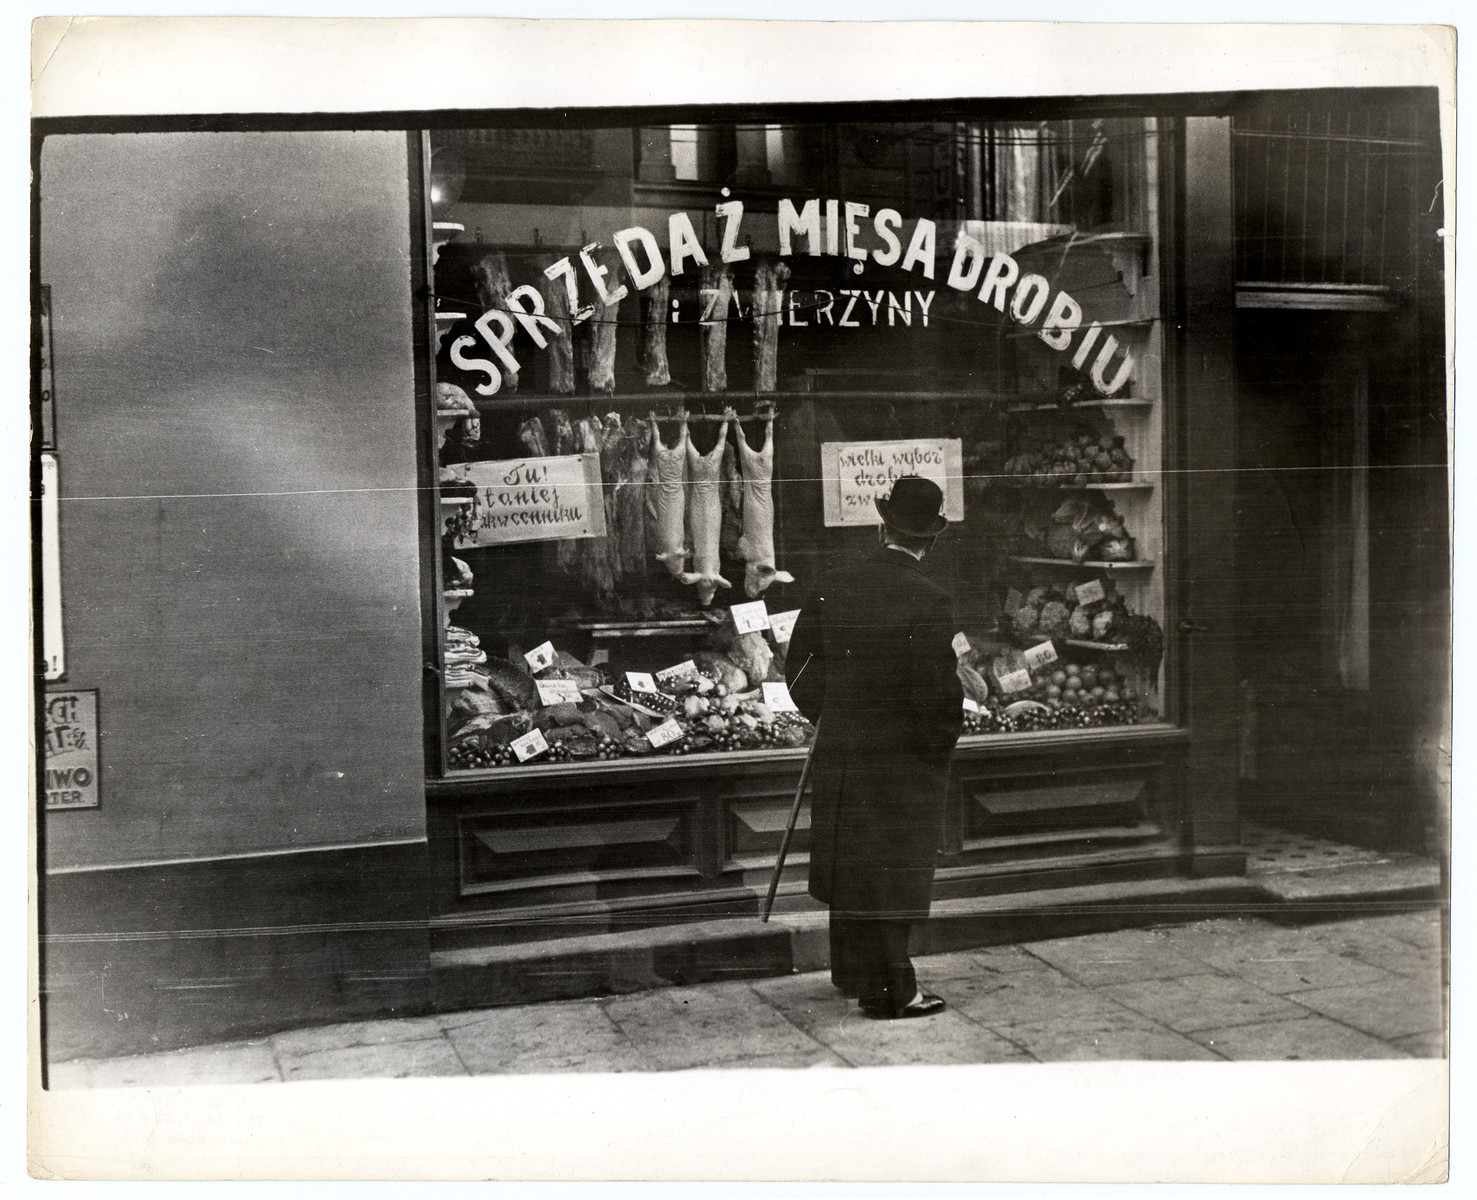 A Polish man peers into the window of a butcher's shop in Warsaw.